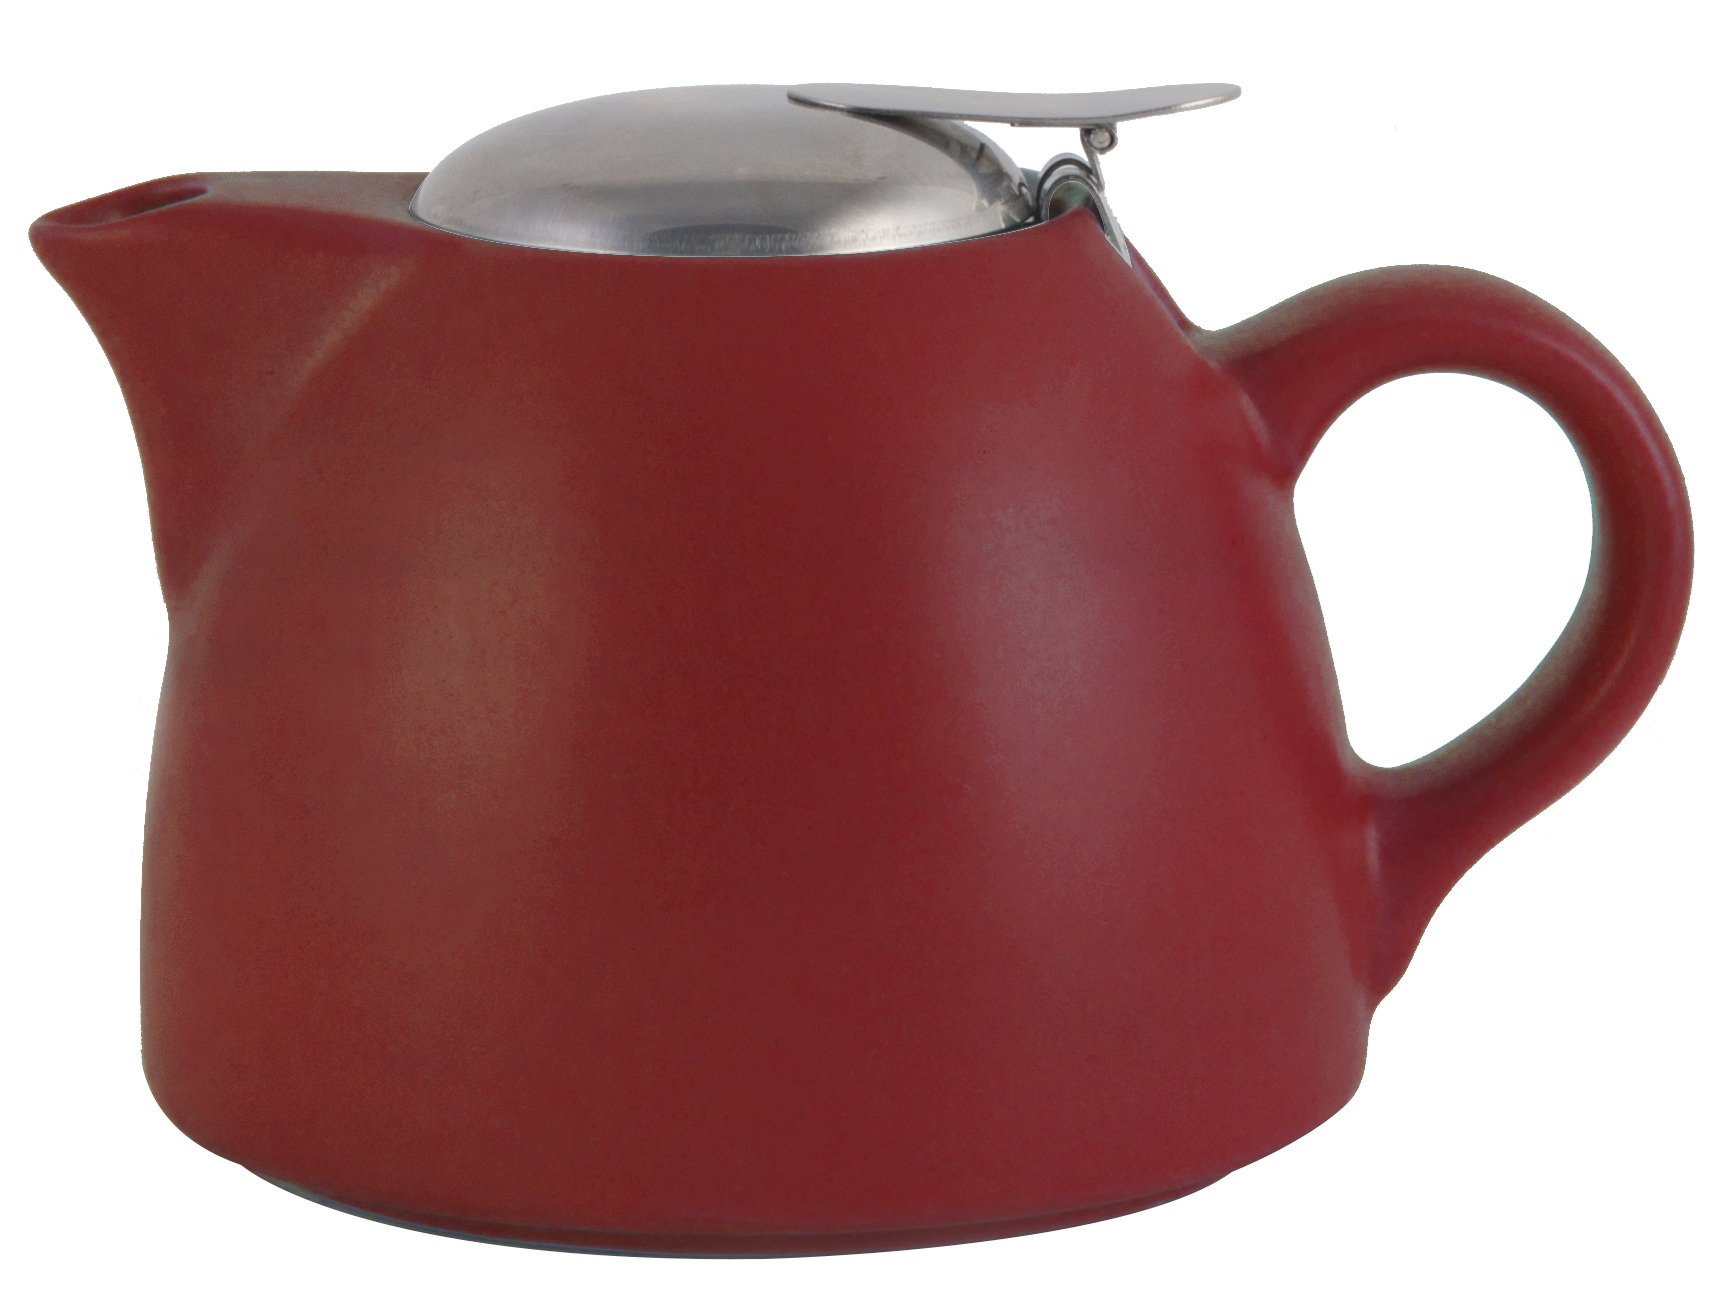 La Cafetiere Barcelona 900ml Teapot Red